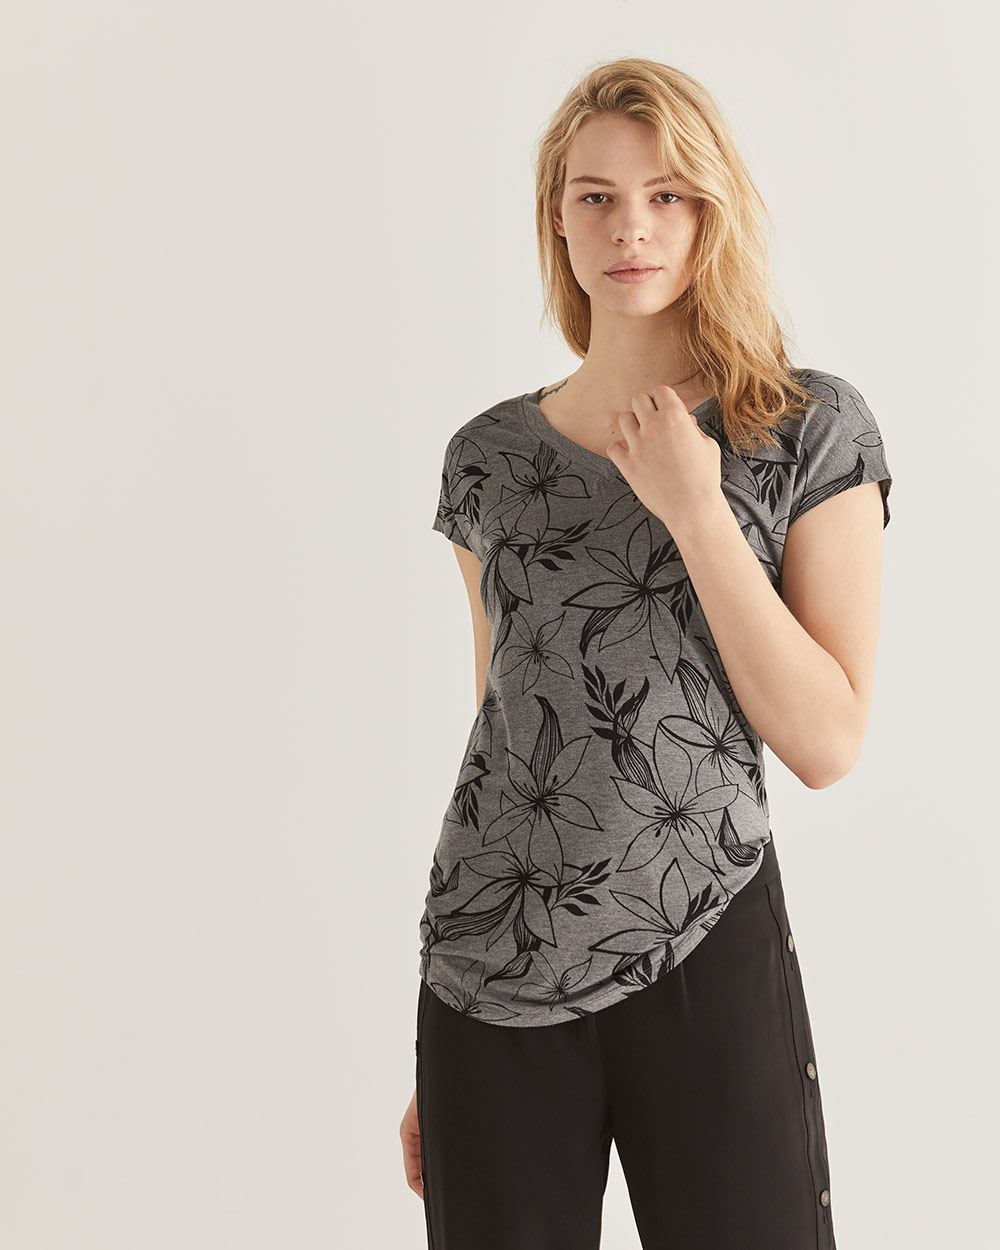 Printed Tunic Length Tee